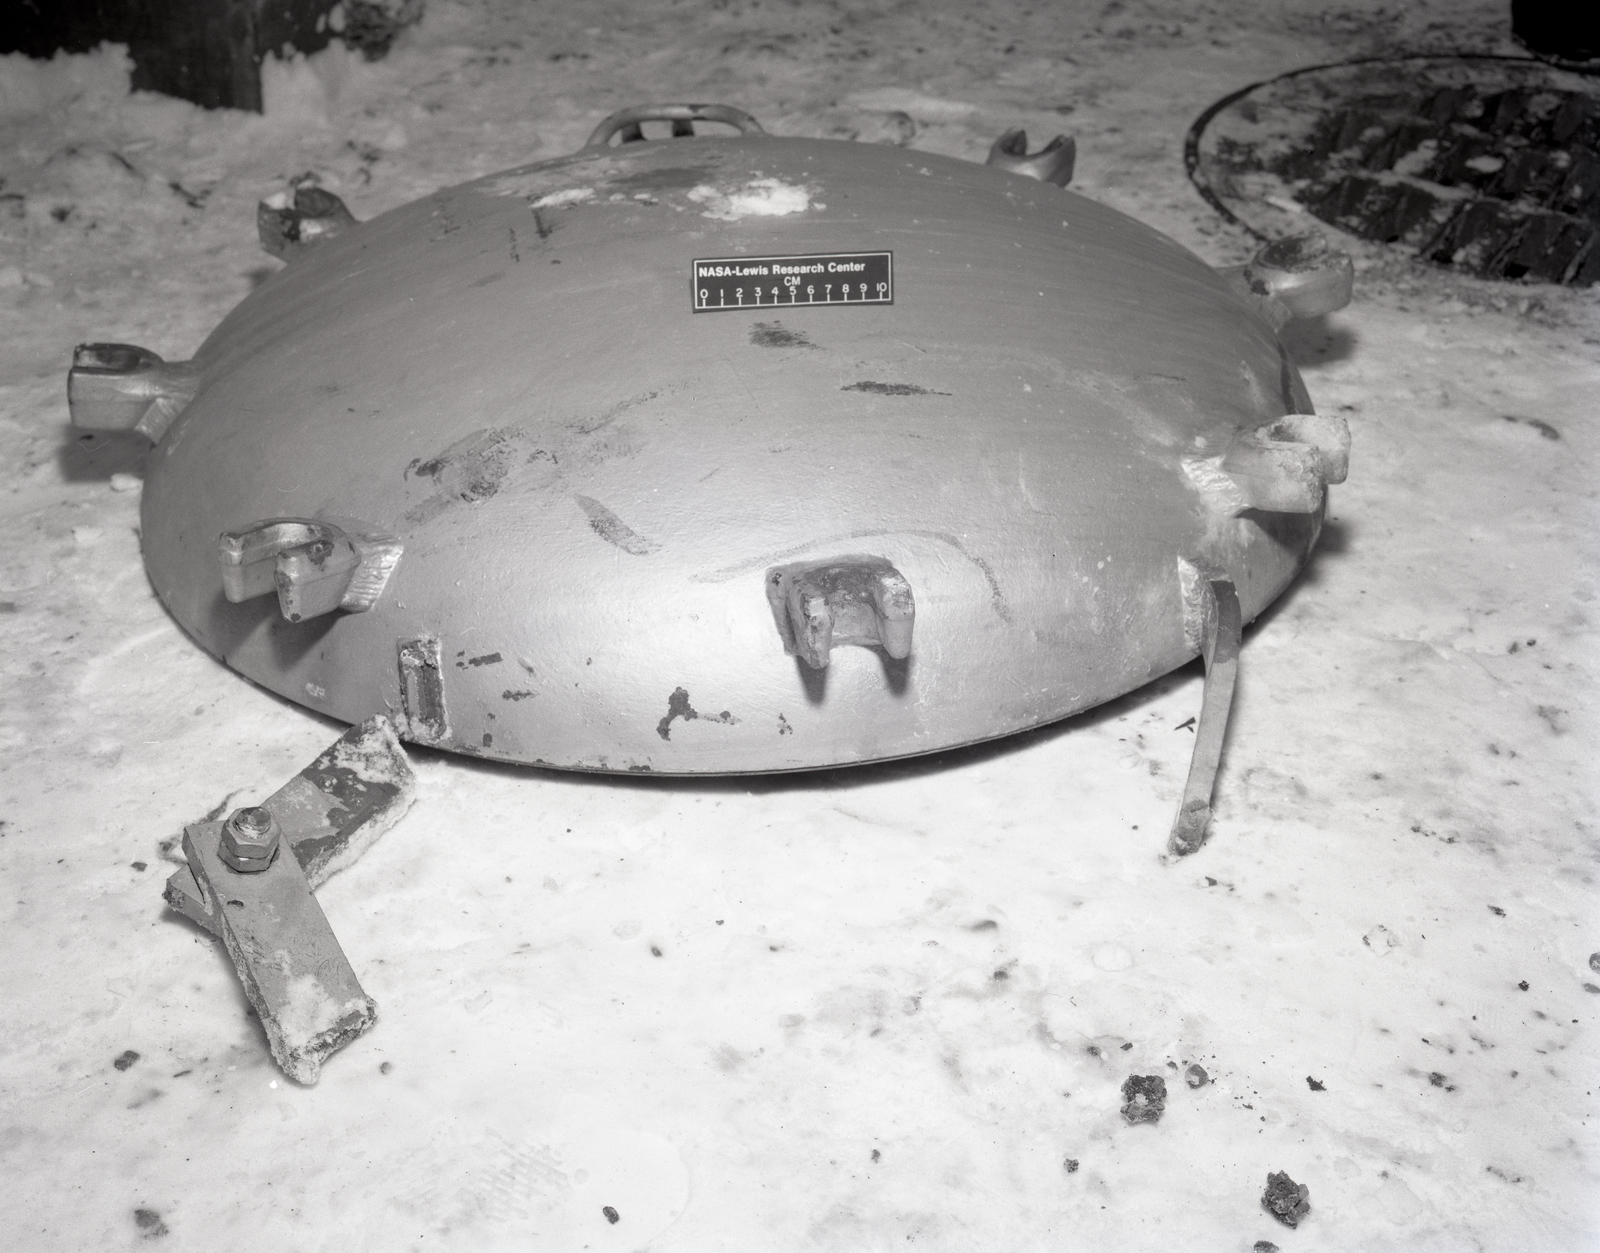 NO. 1 DESI TANK HATCH ACCIDENT